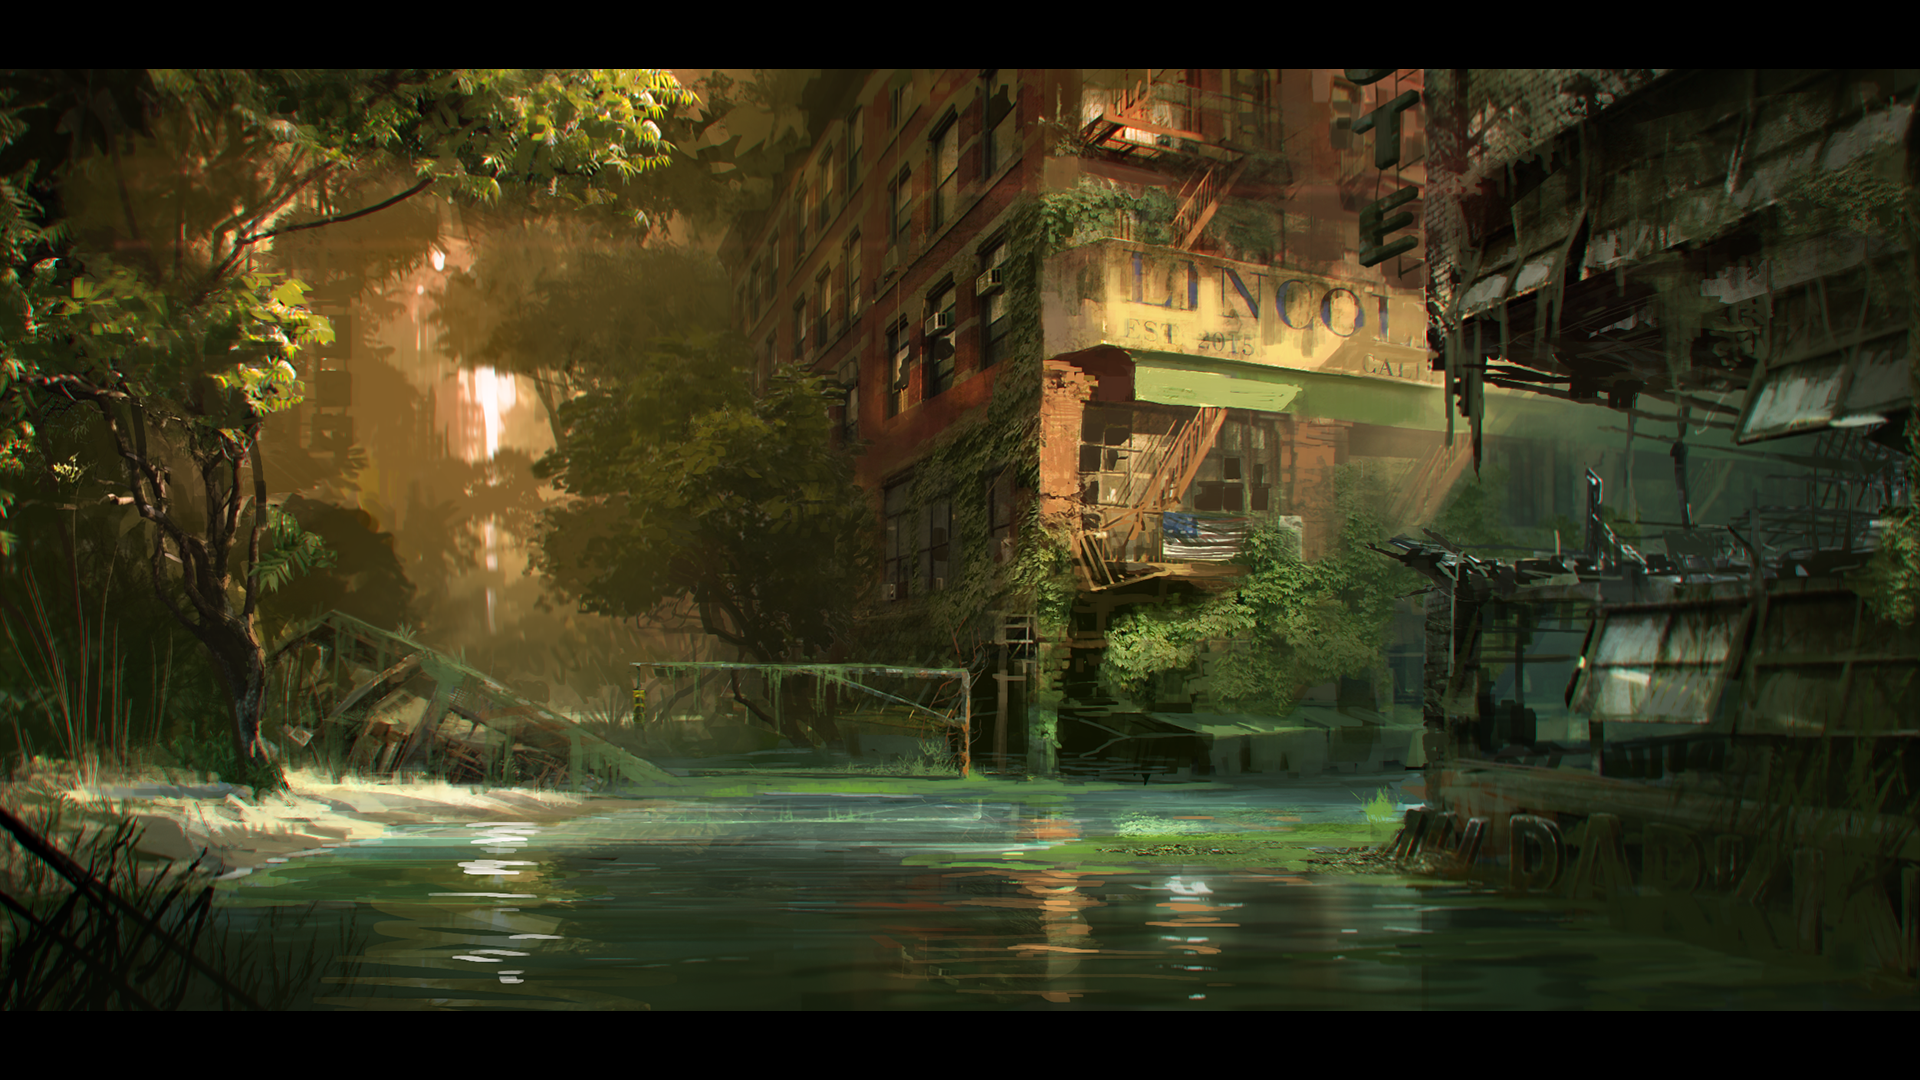 Crysis 3 river concept art playstation lifestyle illustration digital cgi matte - The beauty of an abandoned house the art behind the crisis ...